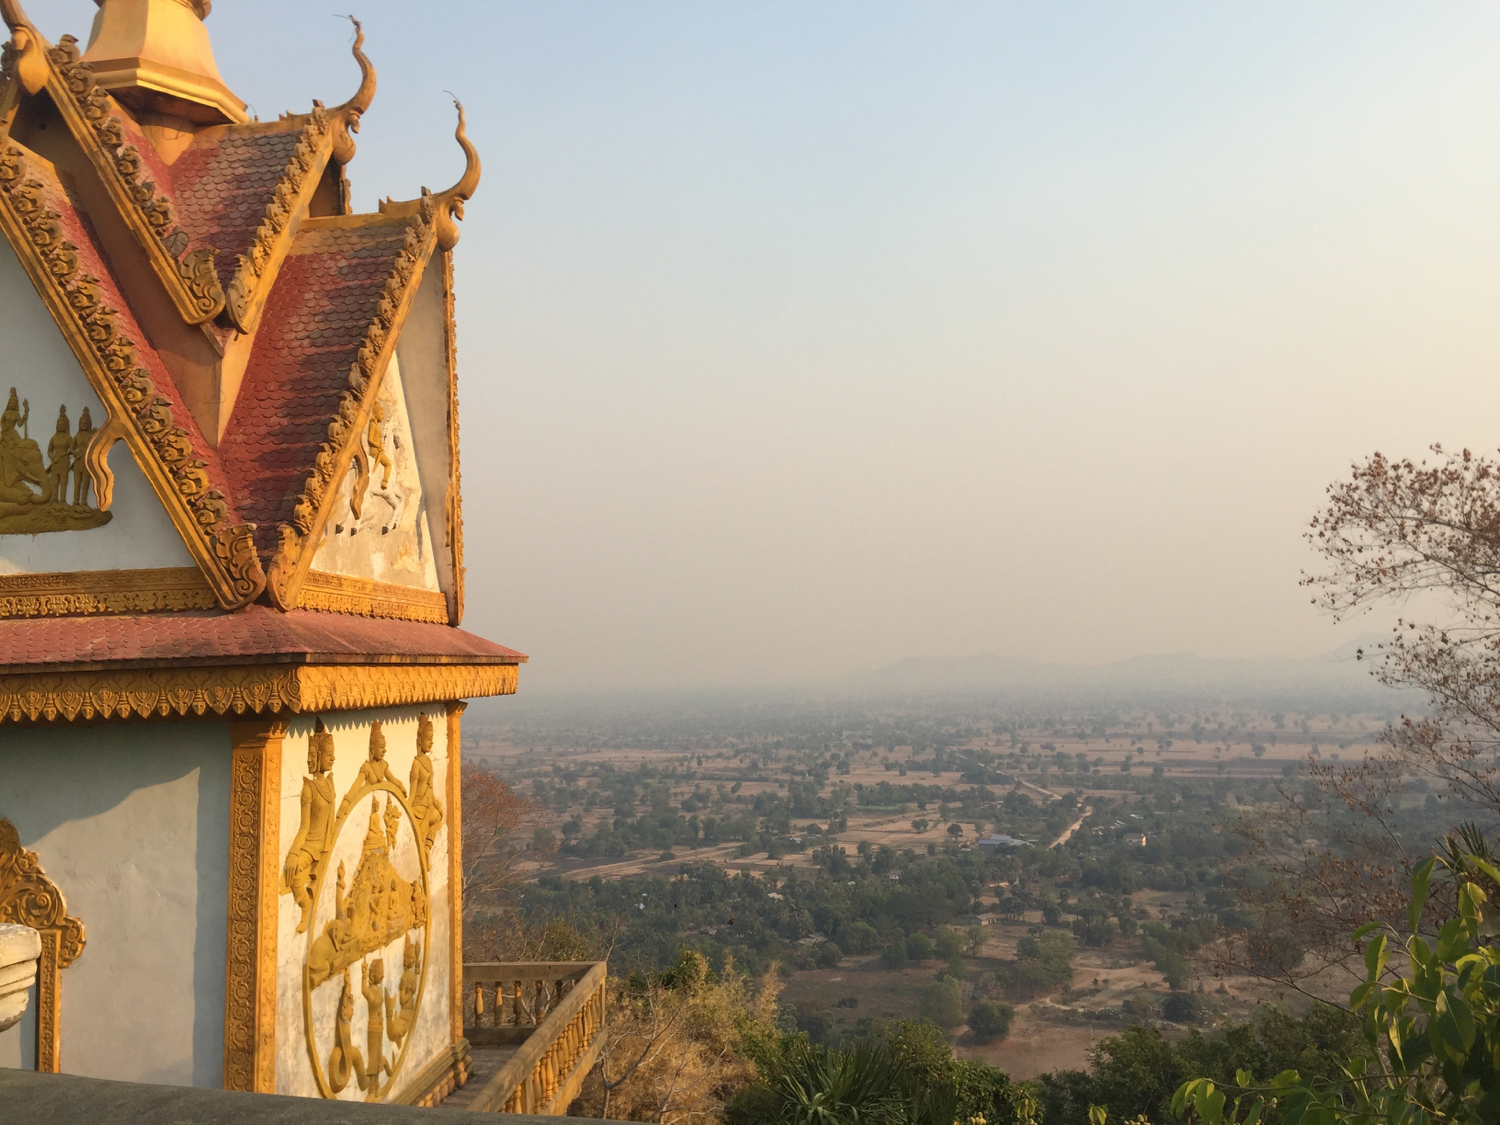 Varsha also traveled extensively throughout Cambodia. Pictured here is Battambang, Cambodia.